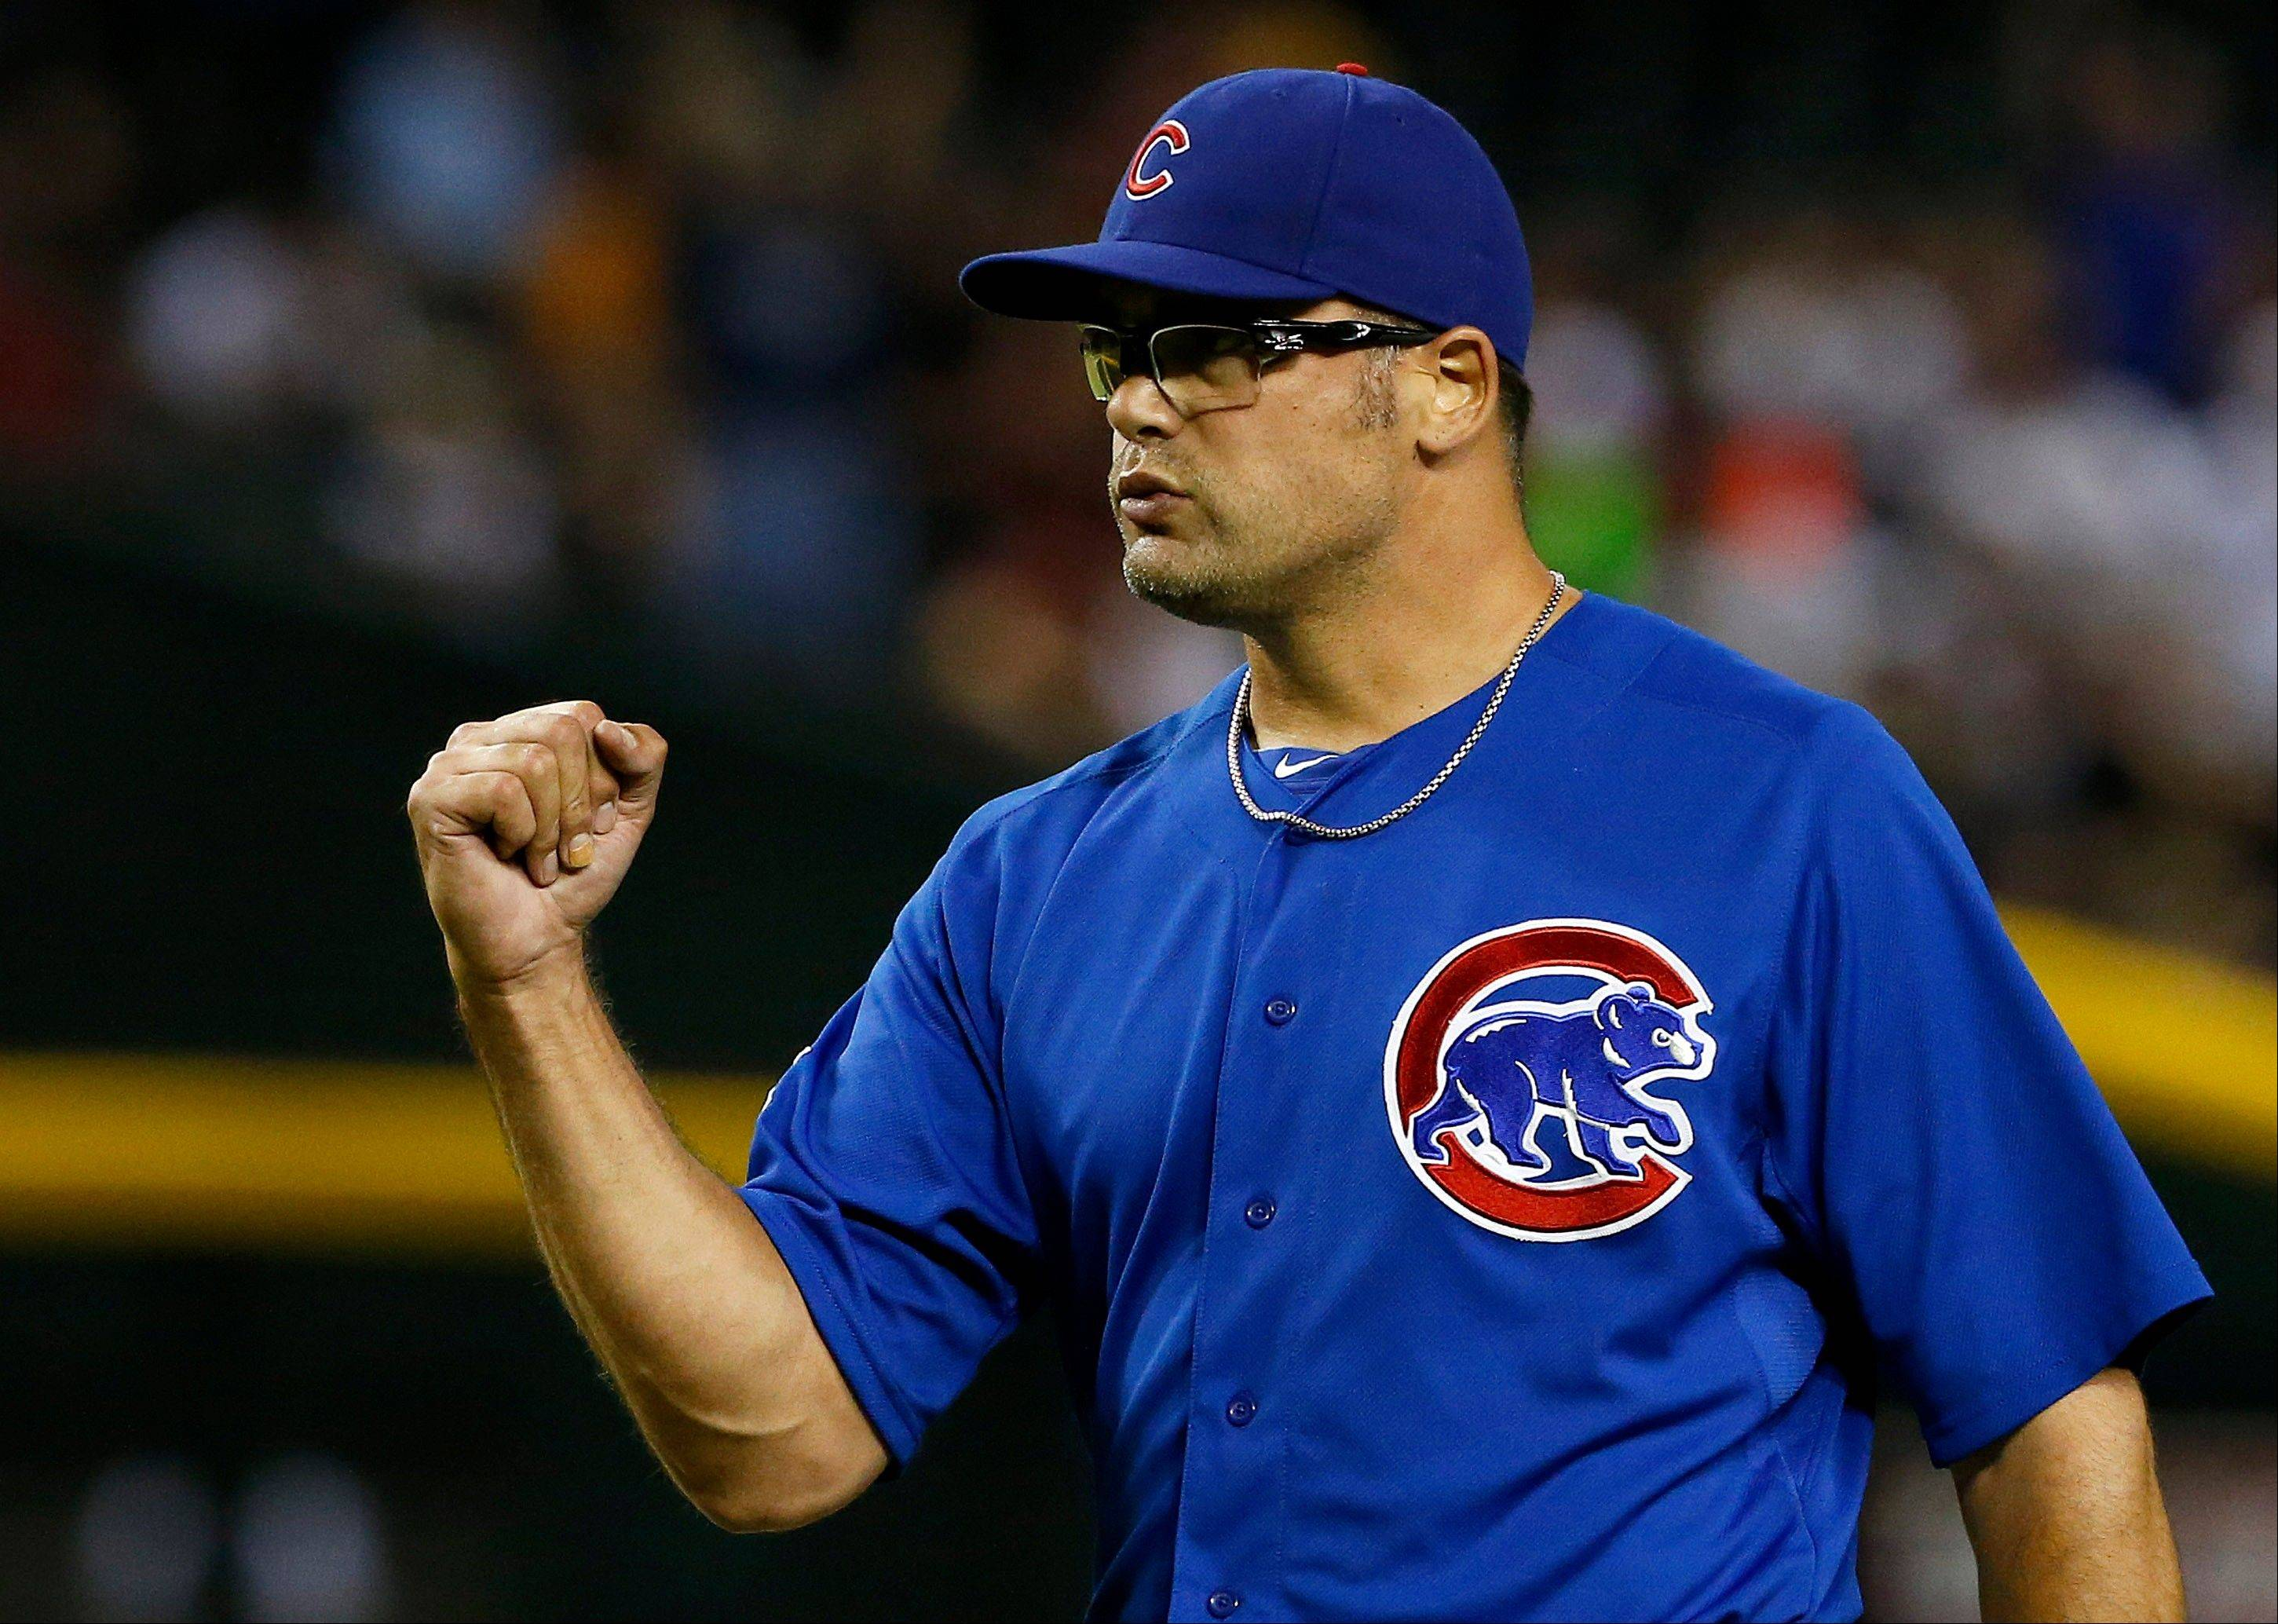 Cubs reliever Kevin Gregg pumps his fist after the final out against the Arizona Diamondbacks on Monday in Phoenix.